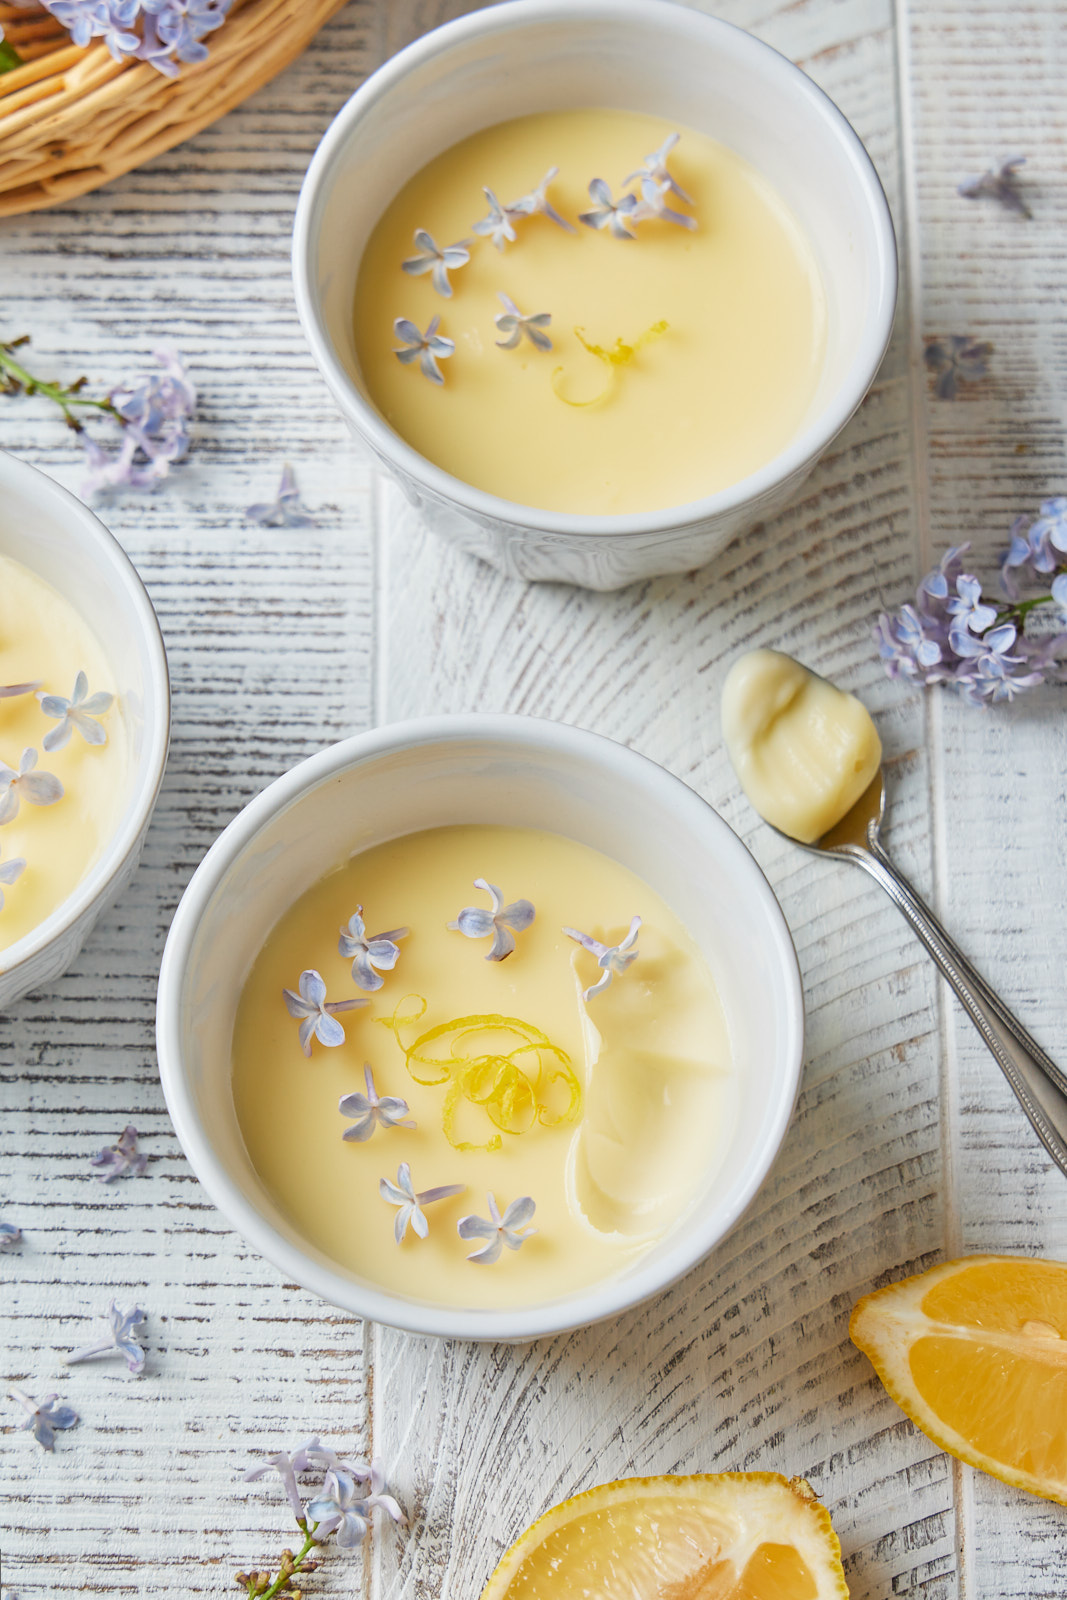 Creamy Lemon Posset Infused With Lilac